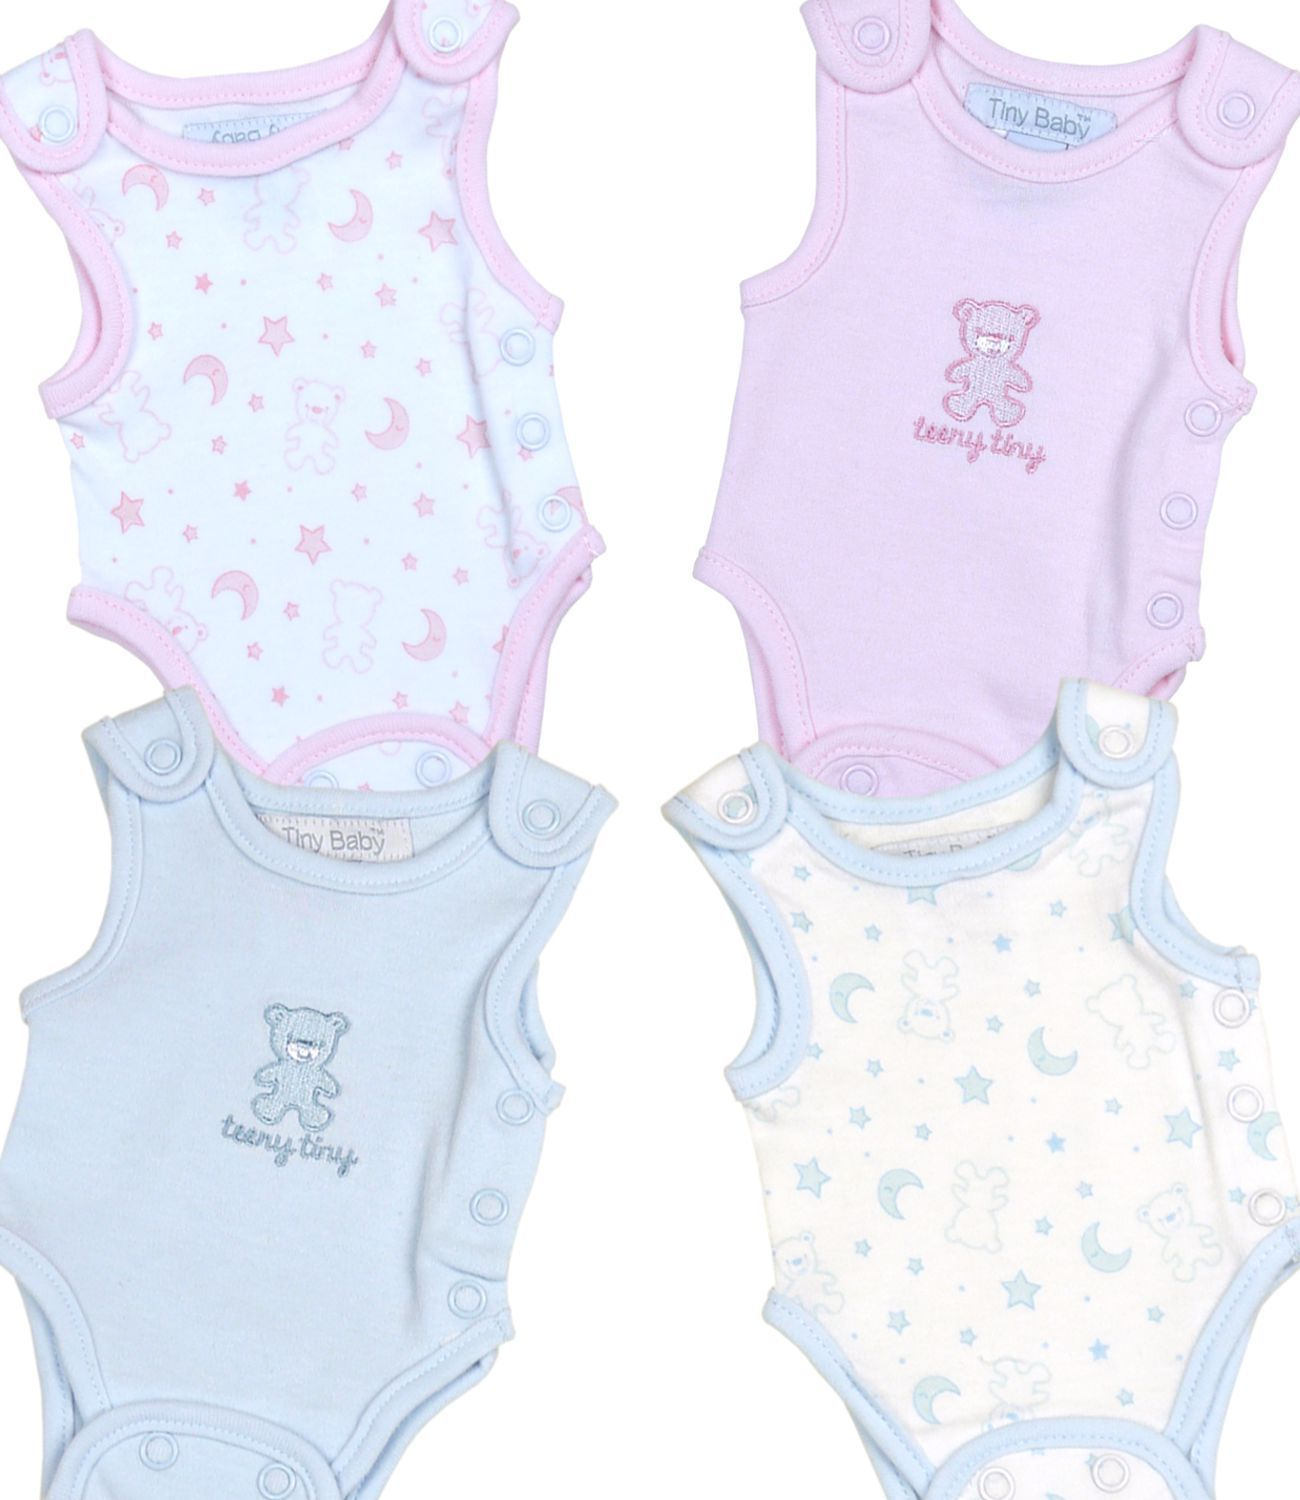 8 99 GBP Babyprem Premature Baby Clothes Tiny Small Neonatal